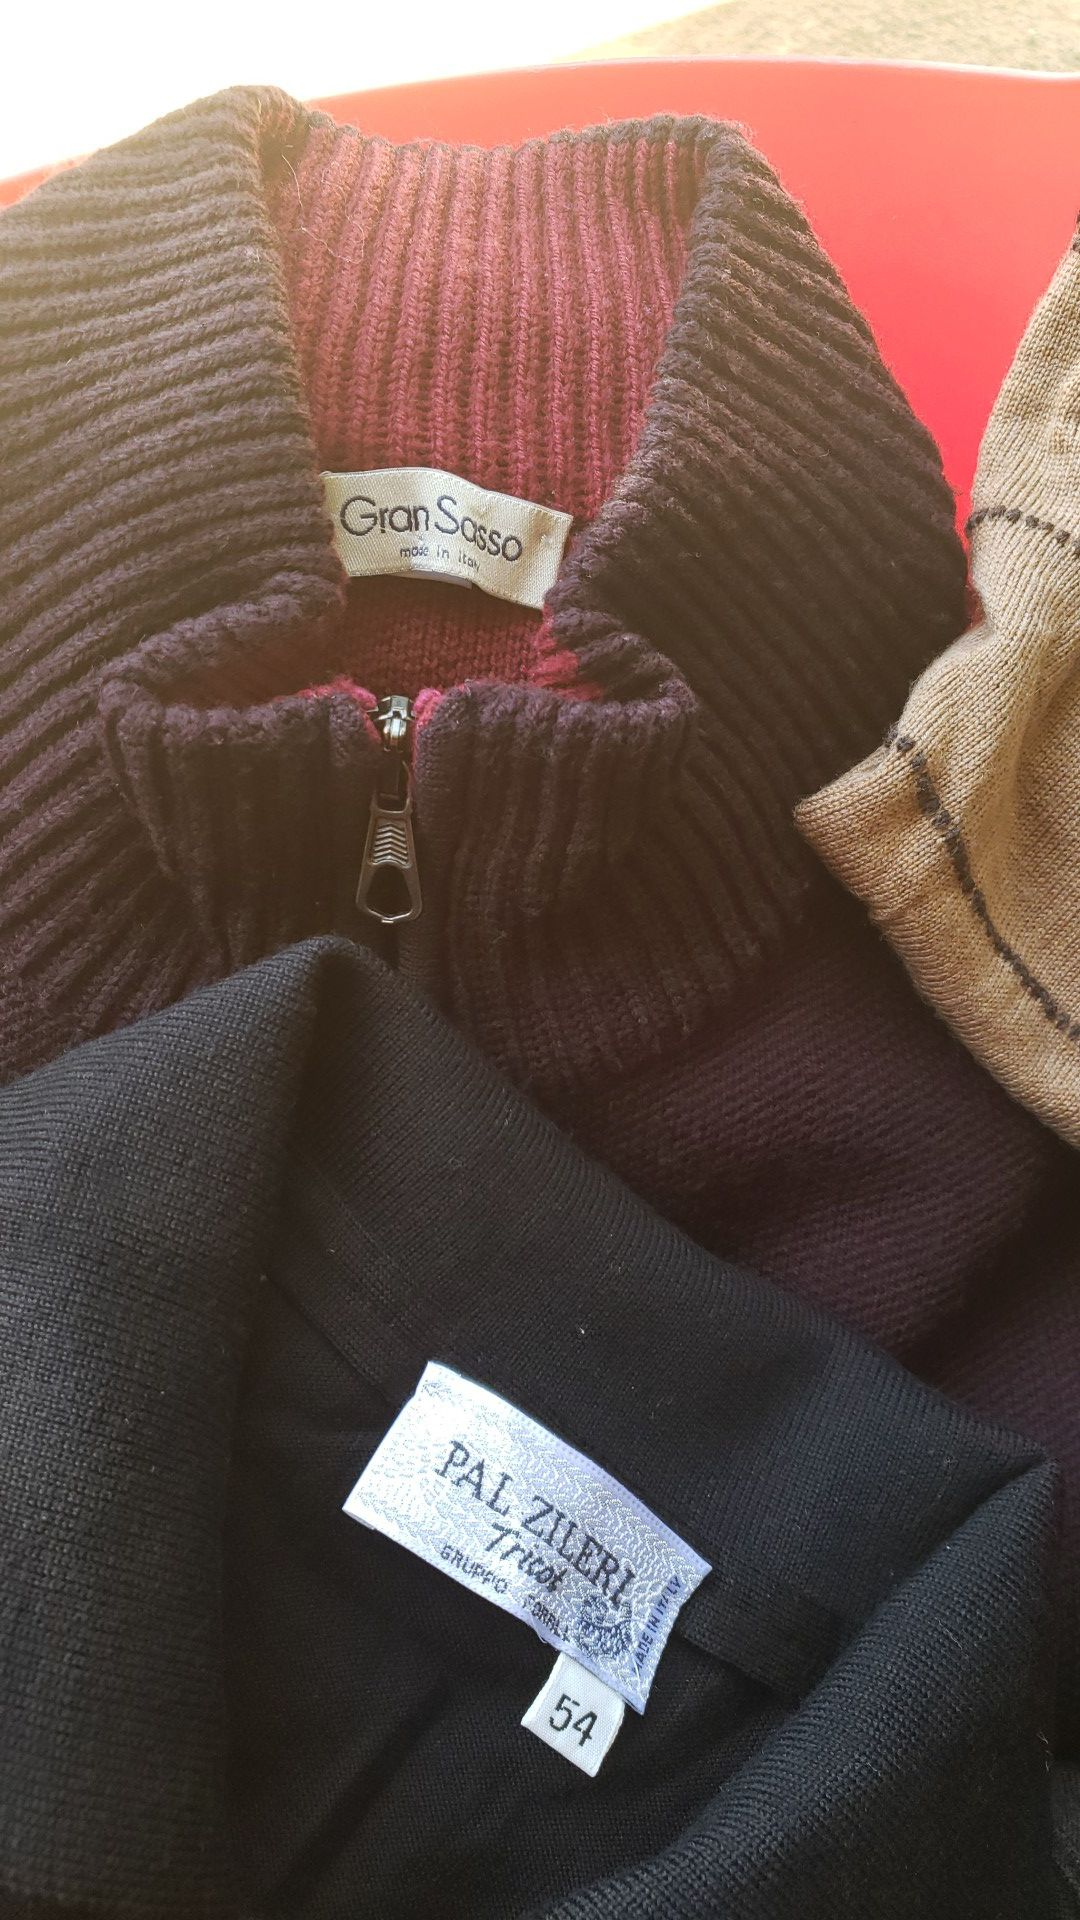 Great sweaters size XL man. All yours for $80.00 or $20.00 each